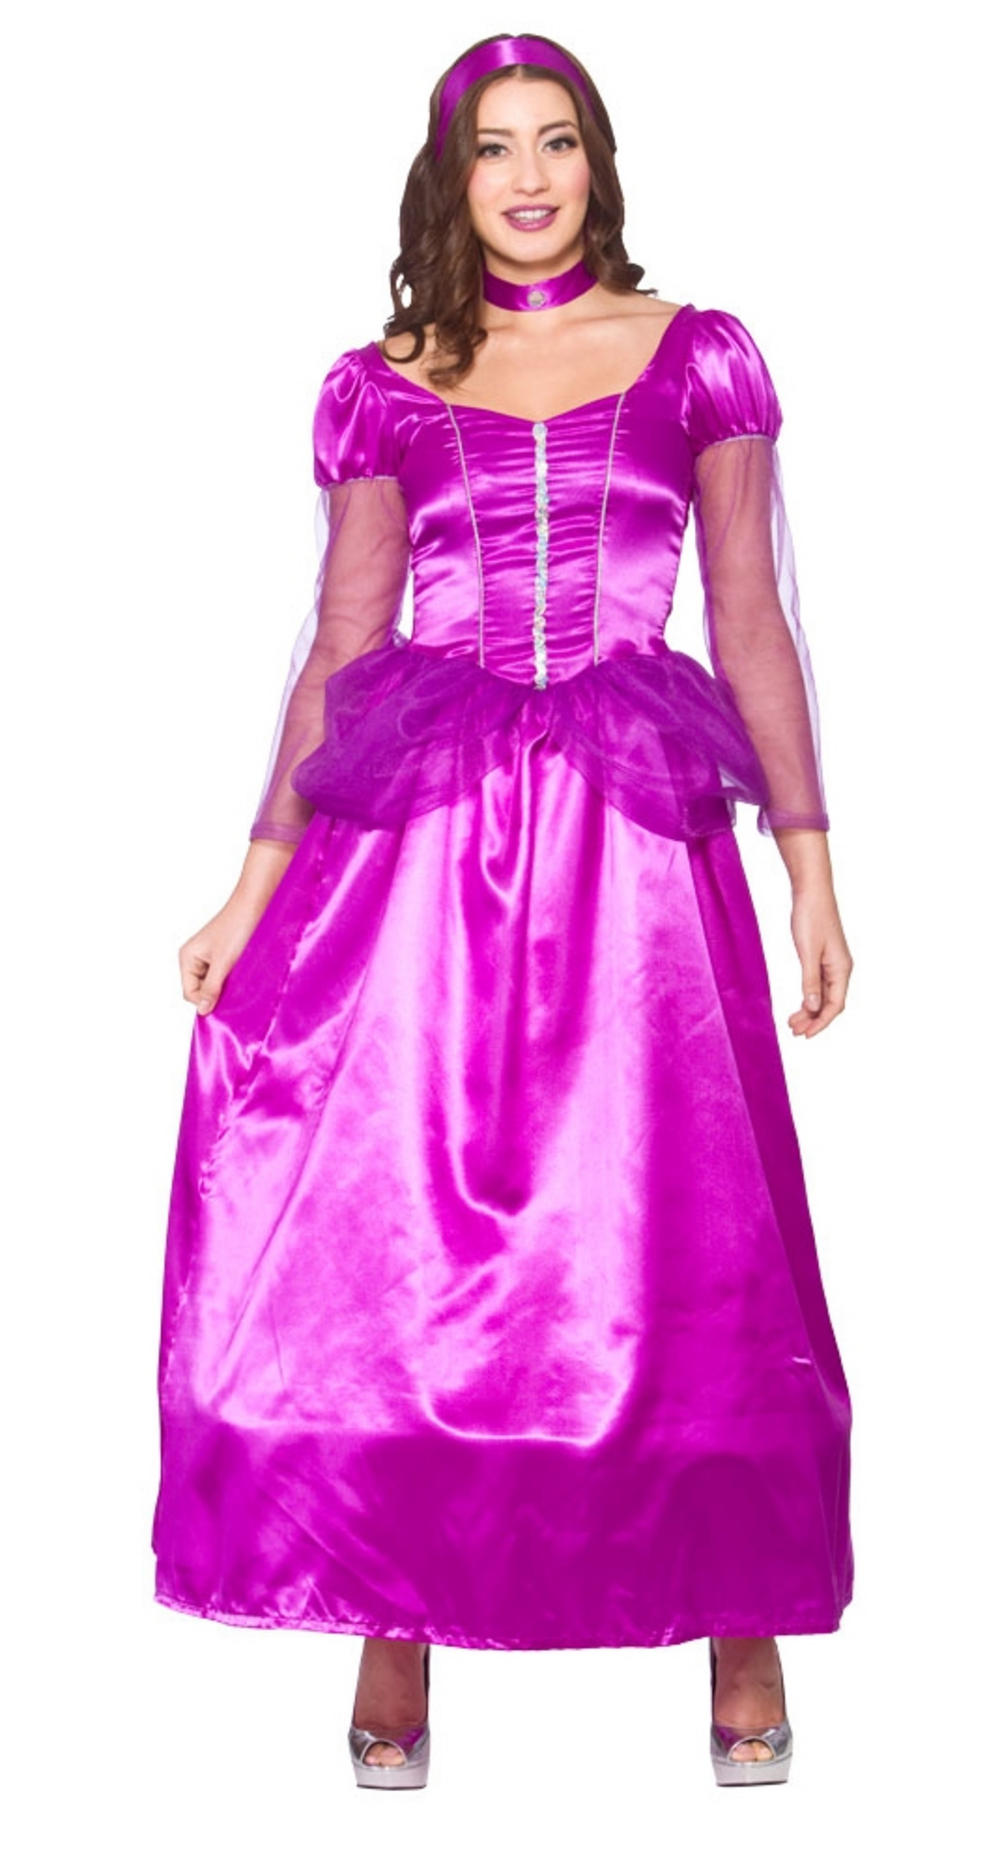 Sweet Princess Ladies Costume